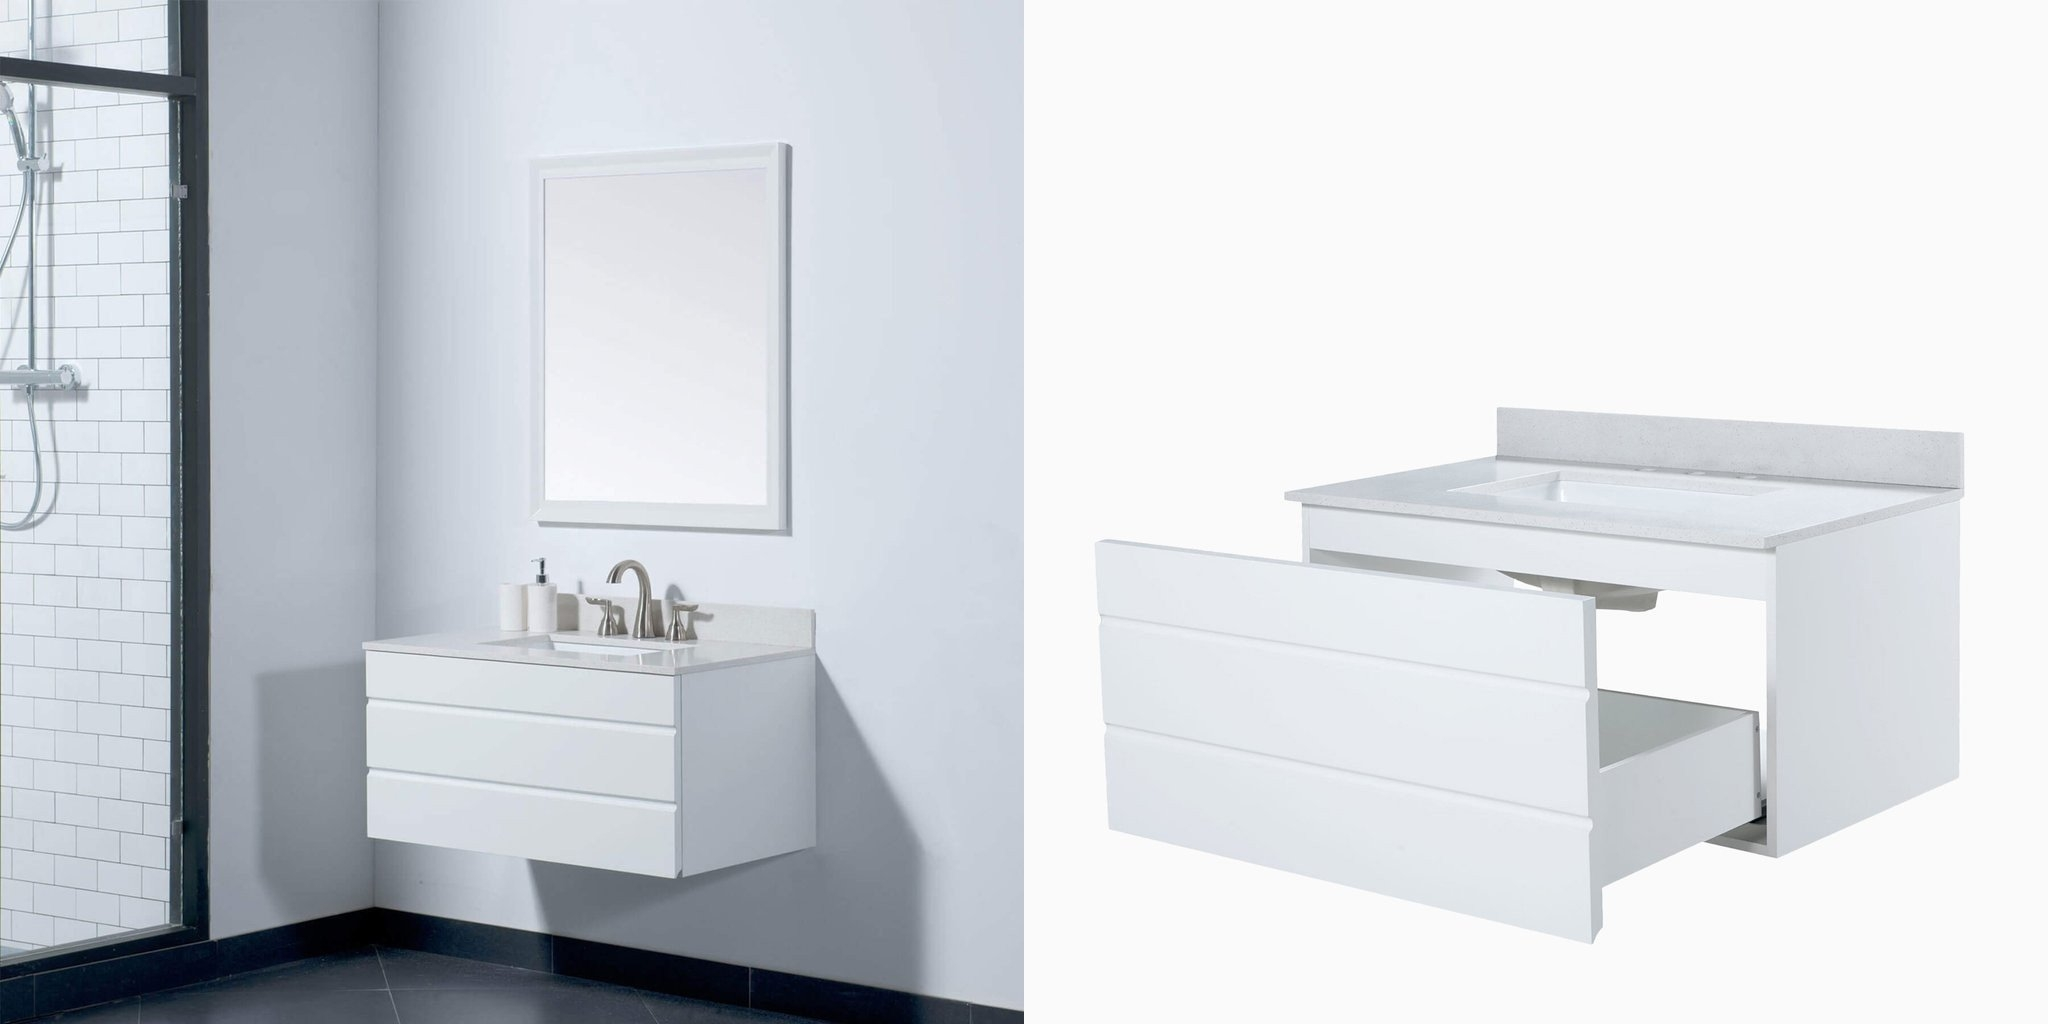 The complete bathroom vanity buying guide Complete bathroom vanity